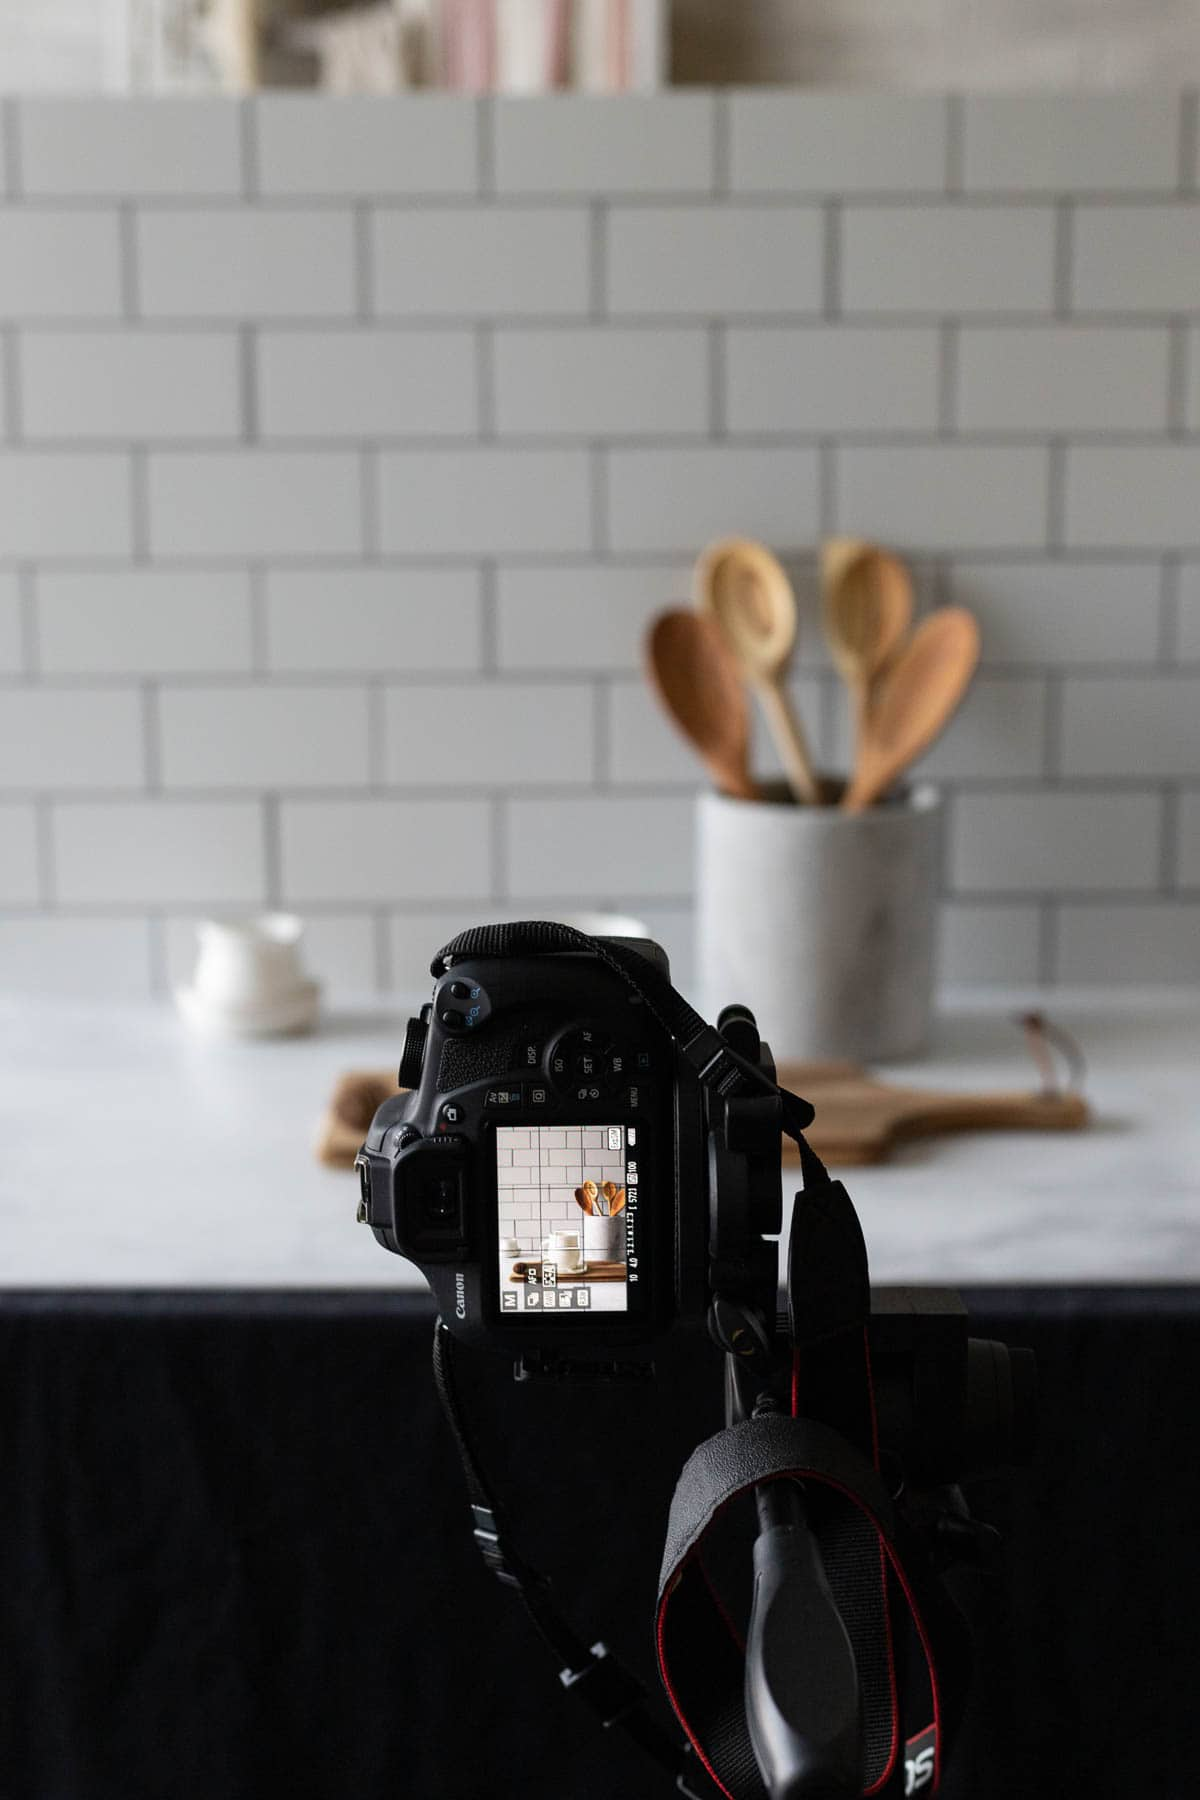 A camera taking a picture with a kitchen canister and subway tile backdrop